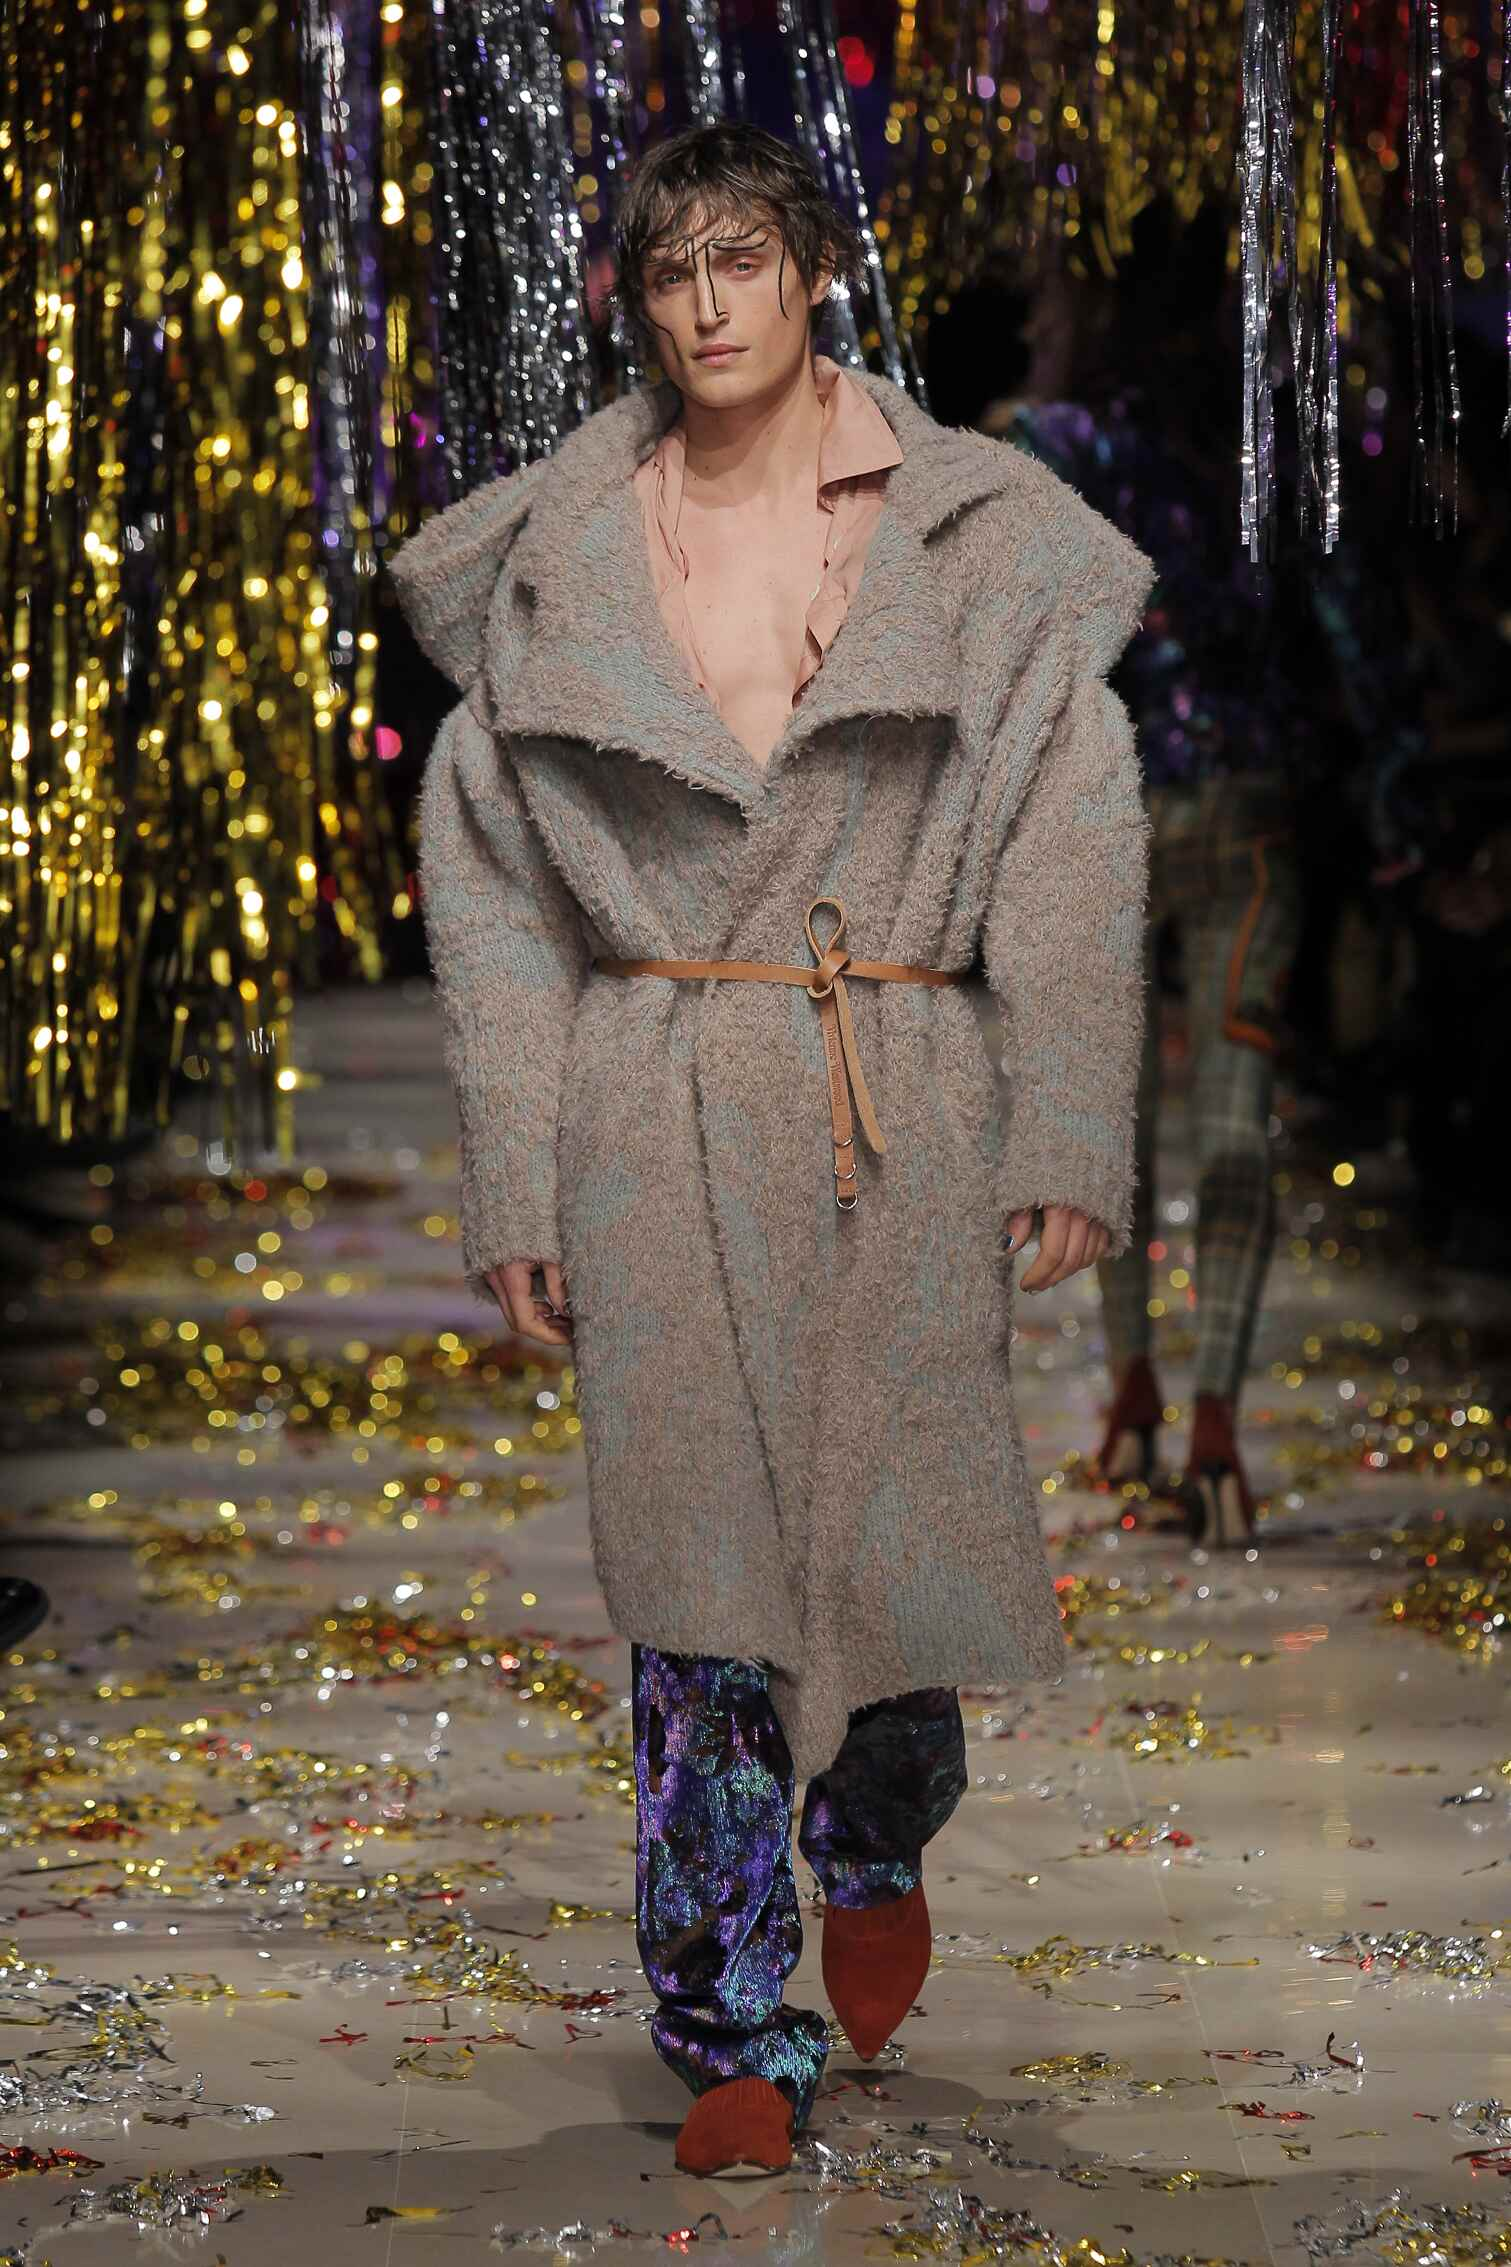 Vivienne Westwood Gold Label Collection Fashion Show FW 2015 2016